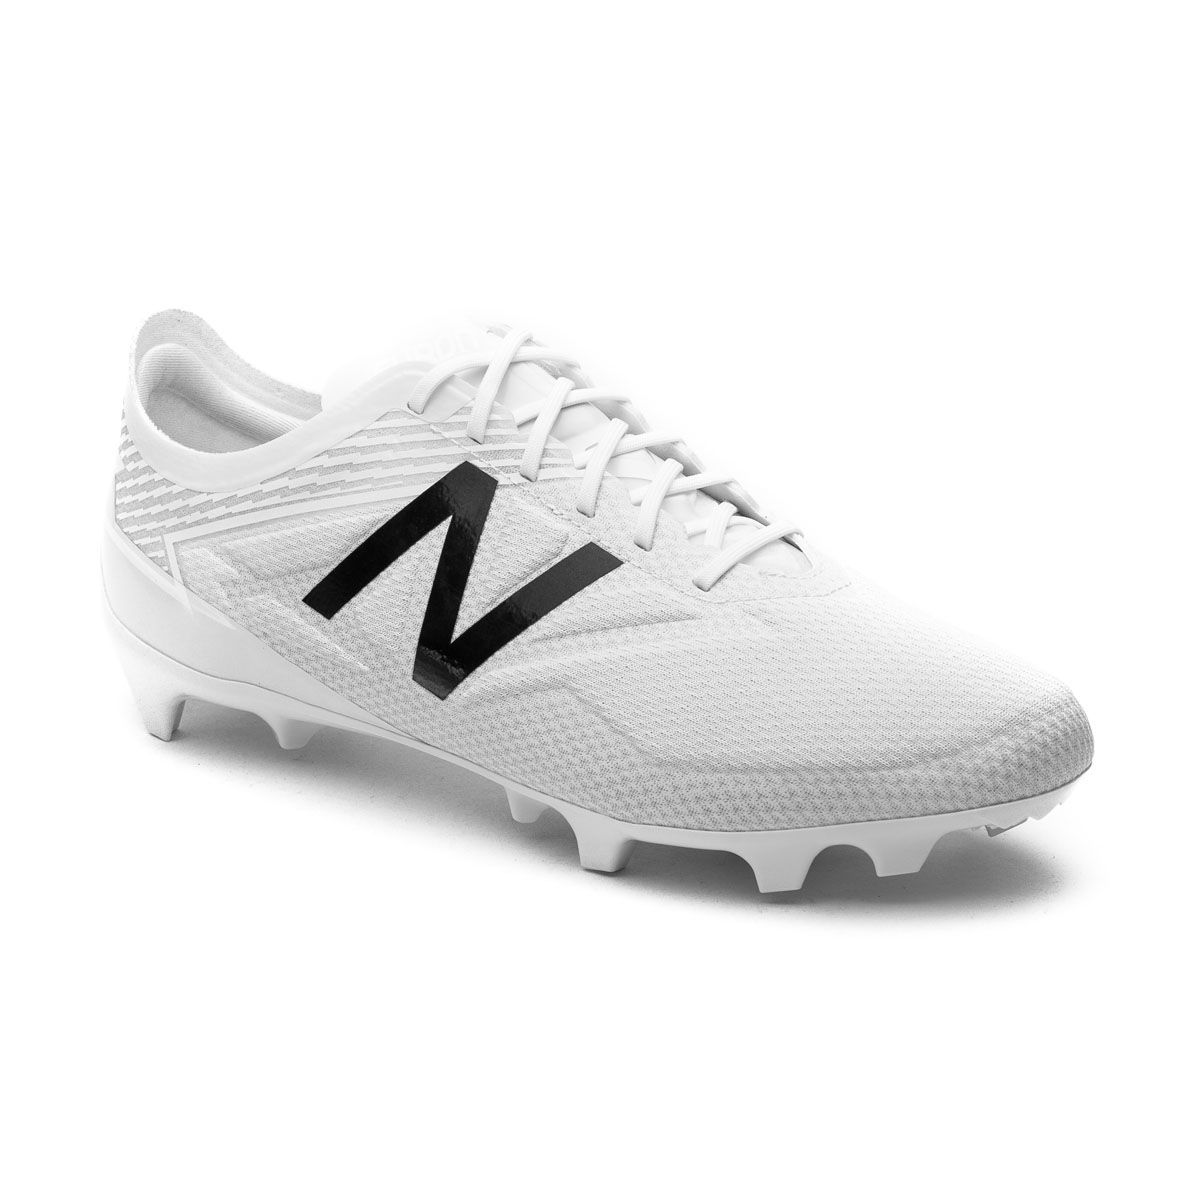 1446318a90c0a ... Click to enlarge image new_balance_furon_3_0_pro_fg_white_d.jpg ...